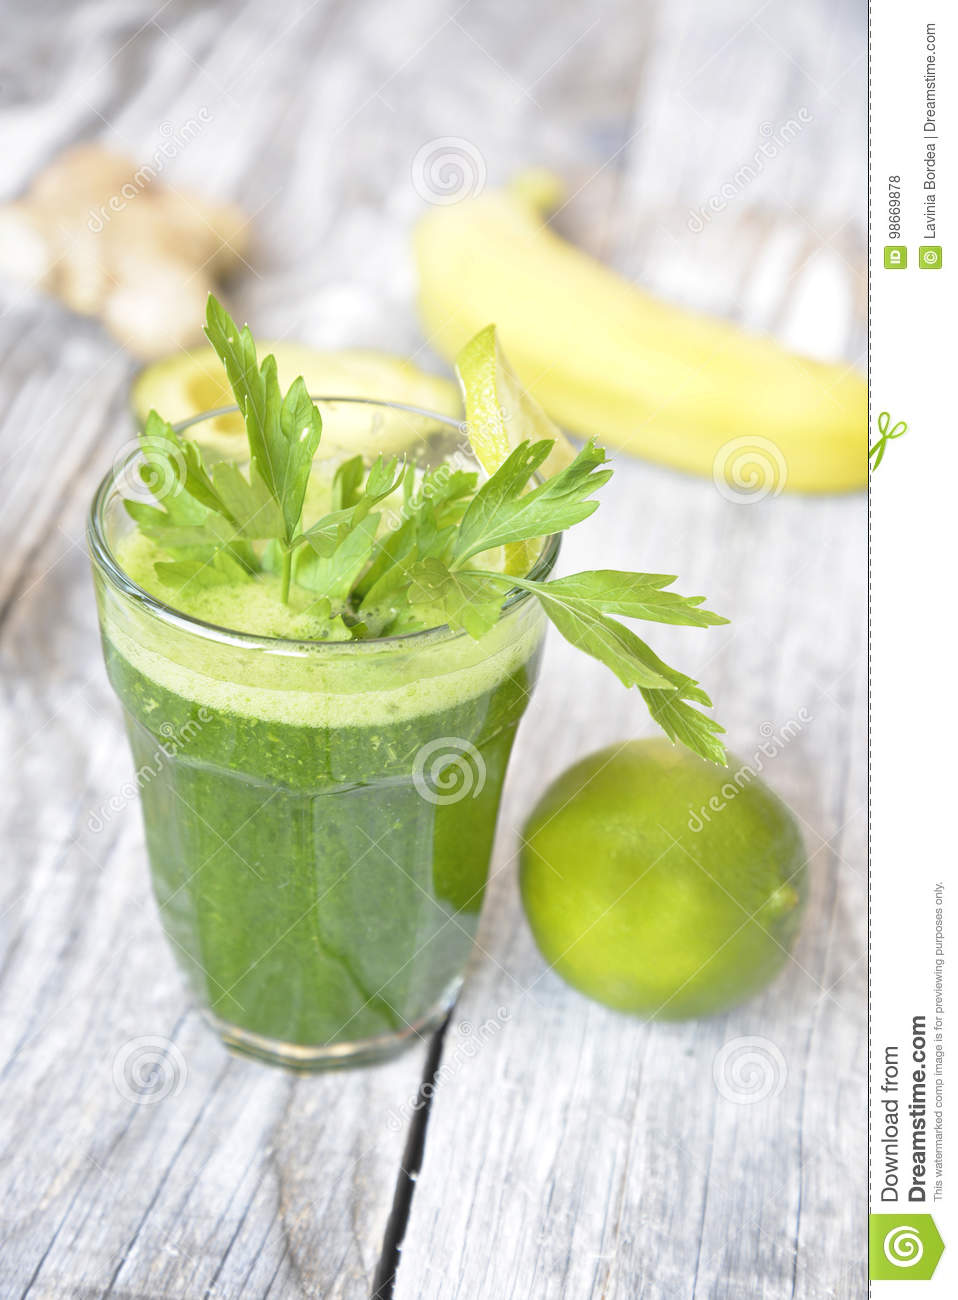 Smoothie with lime, avocado and banana